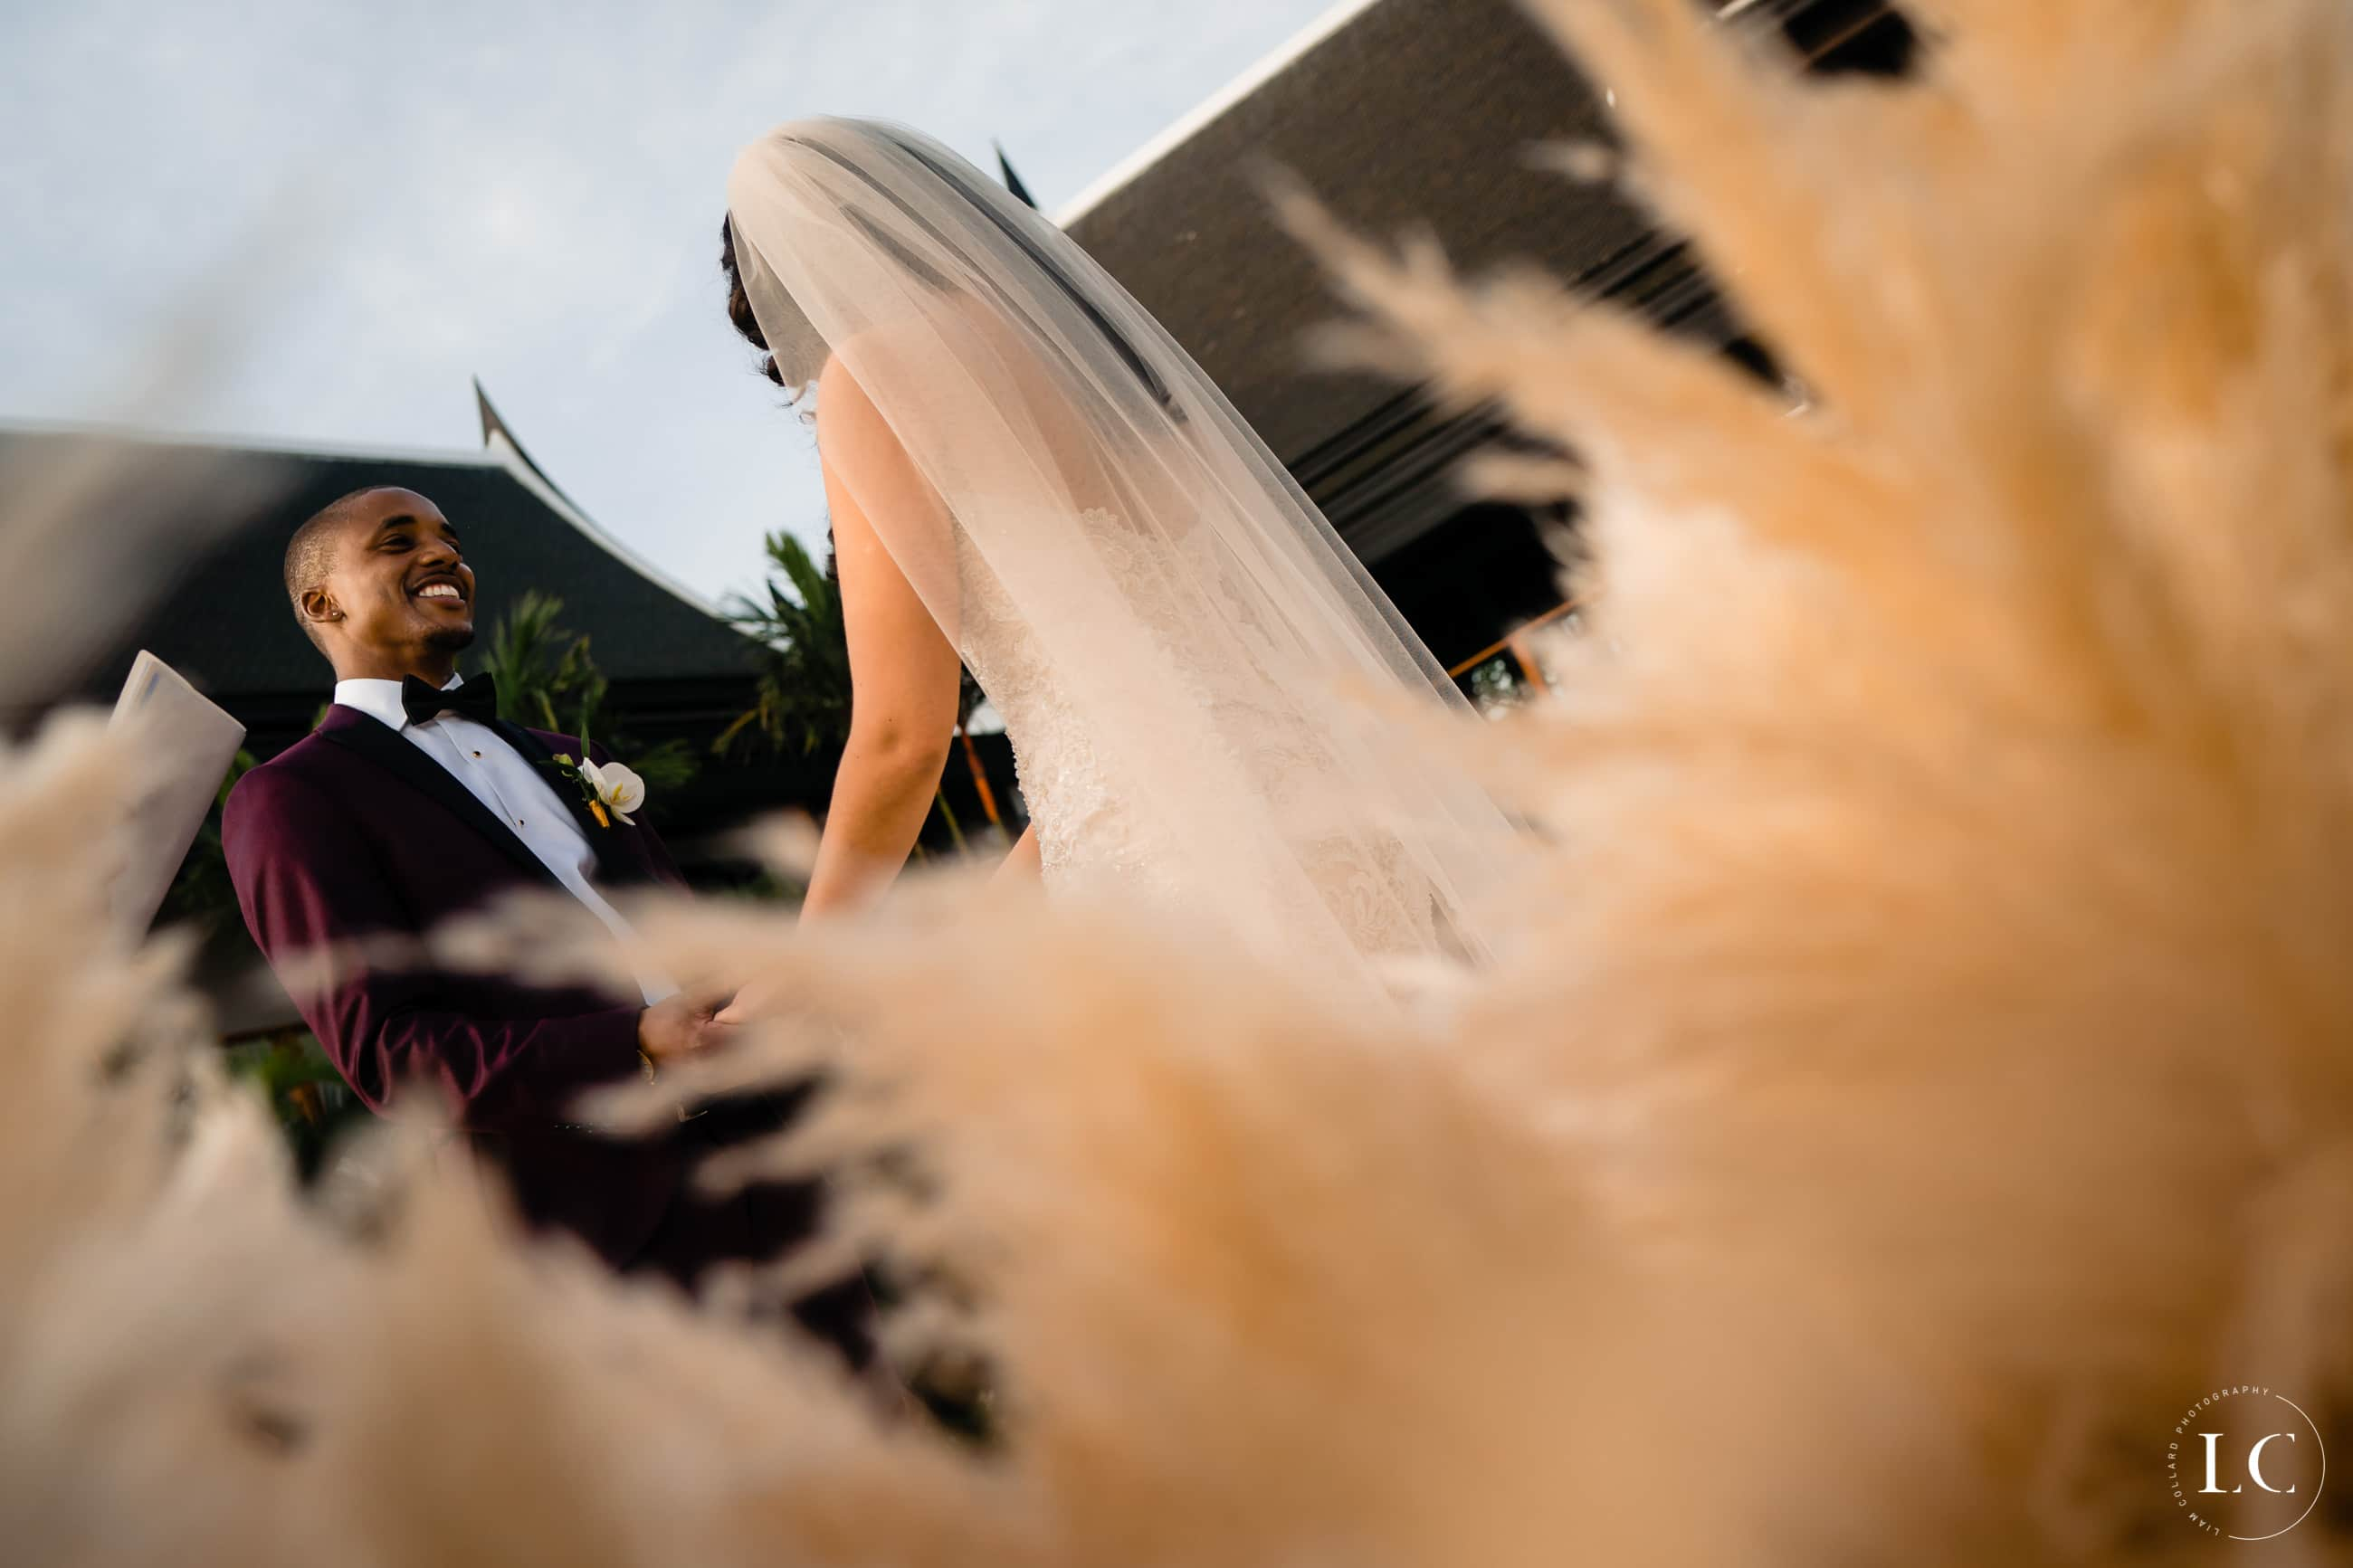 Distorted low angle shot of bride from behind